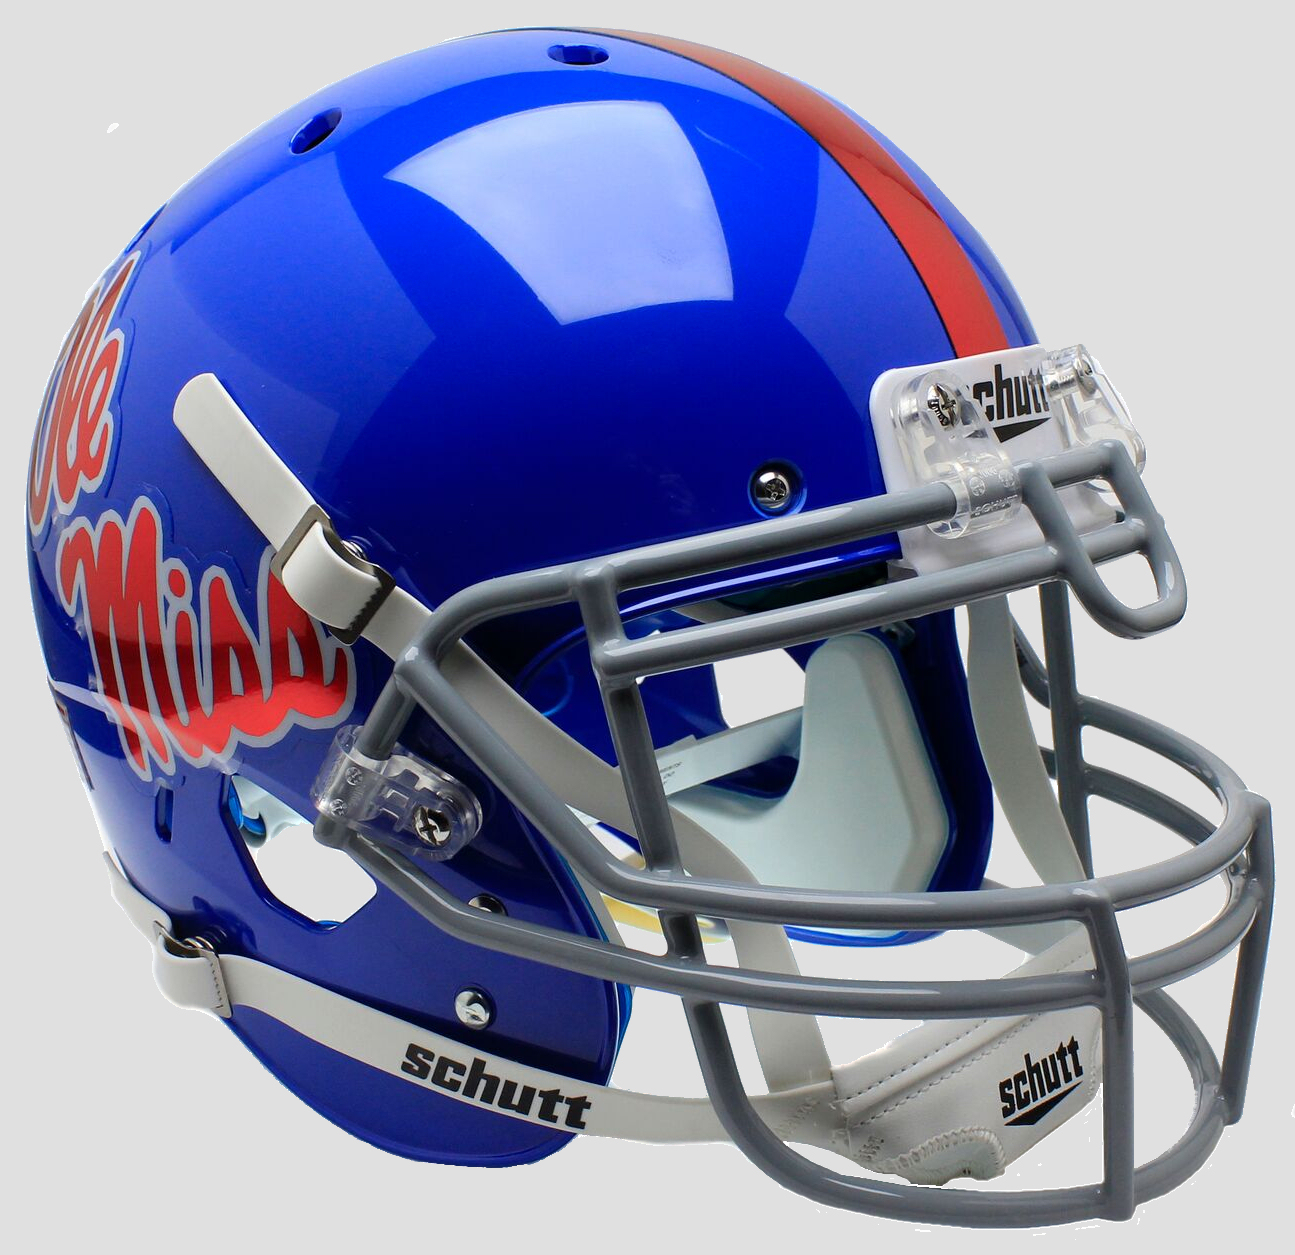 Mississippi (Ole Miss) Rebels Authentic College XP Football Helmet Schutt <B>Blue with Chrome Decal</B